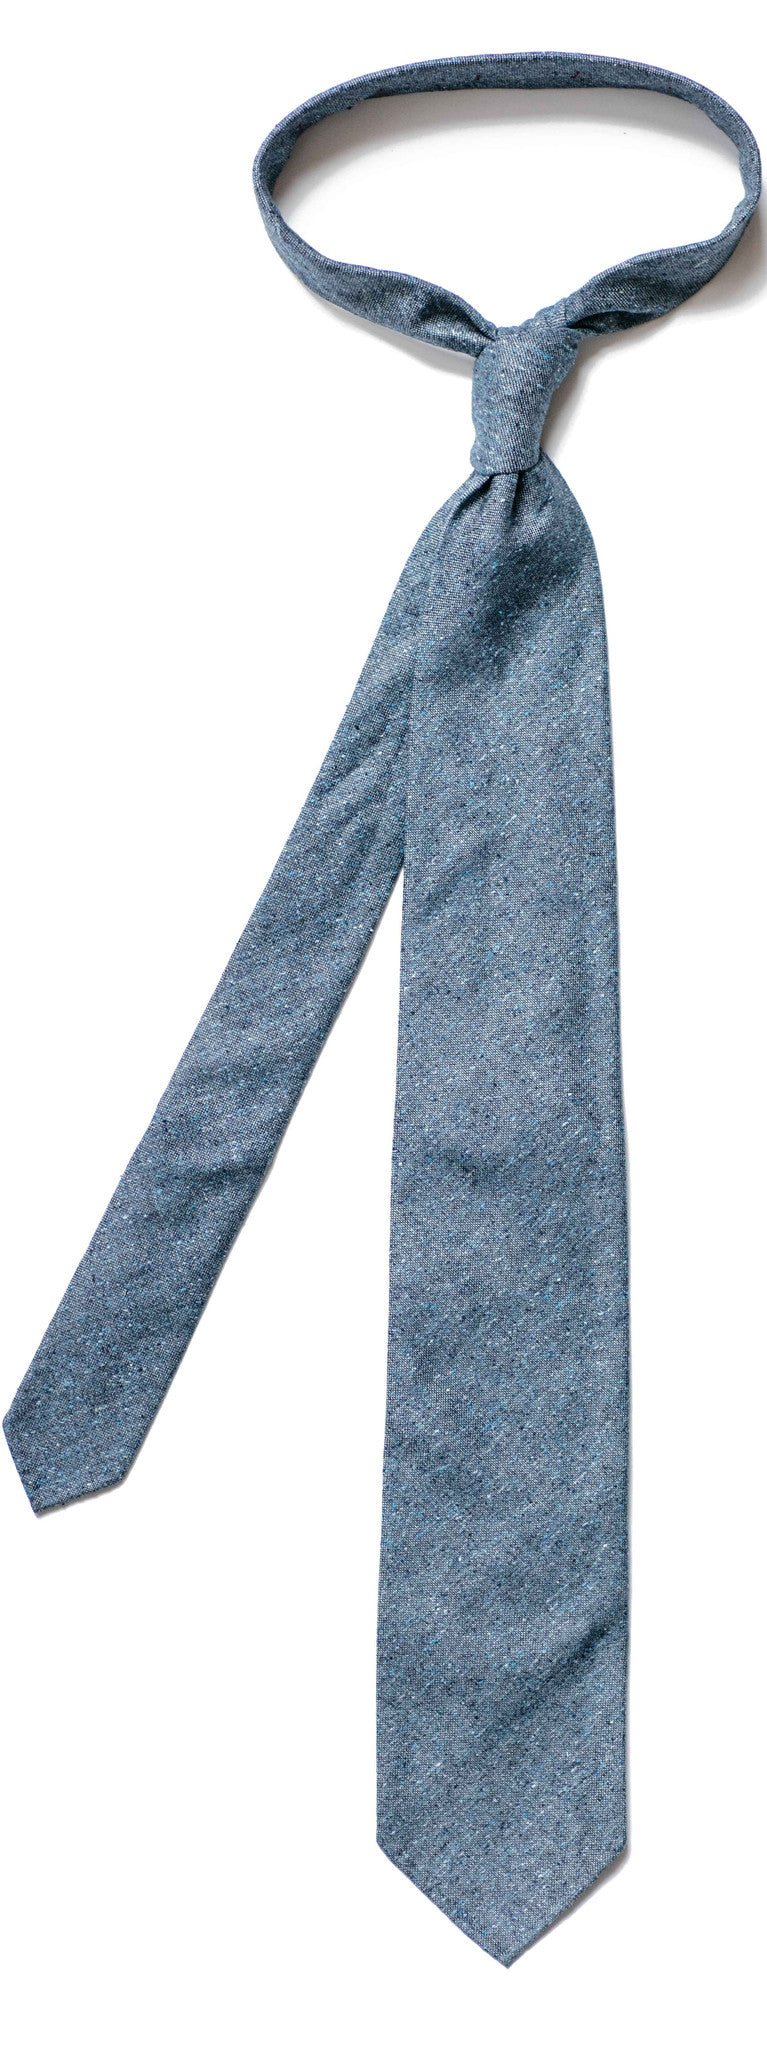 Speckled Dark Blue Silk and Cotton Tie